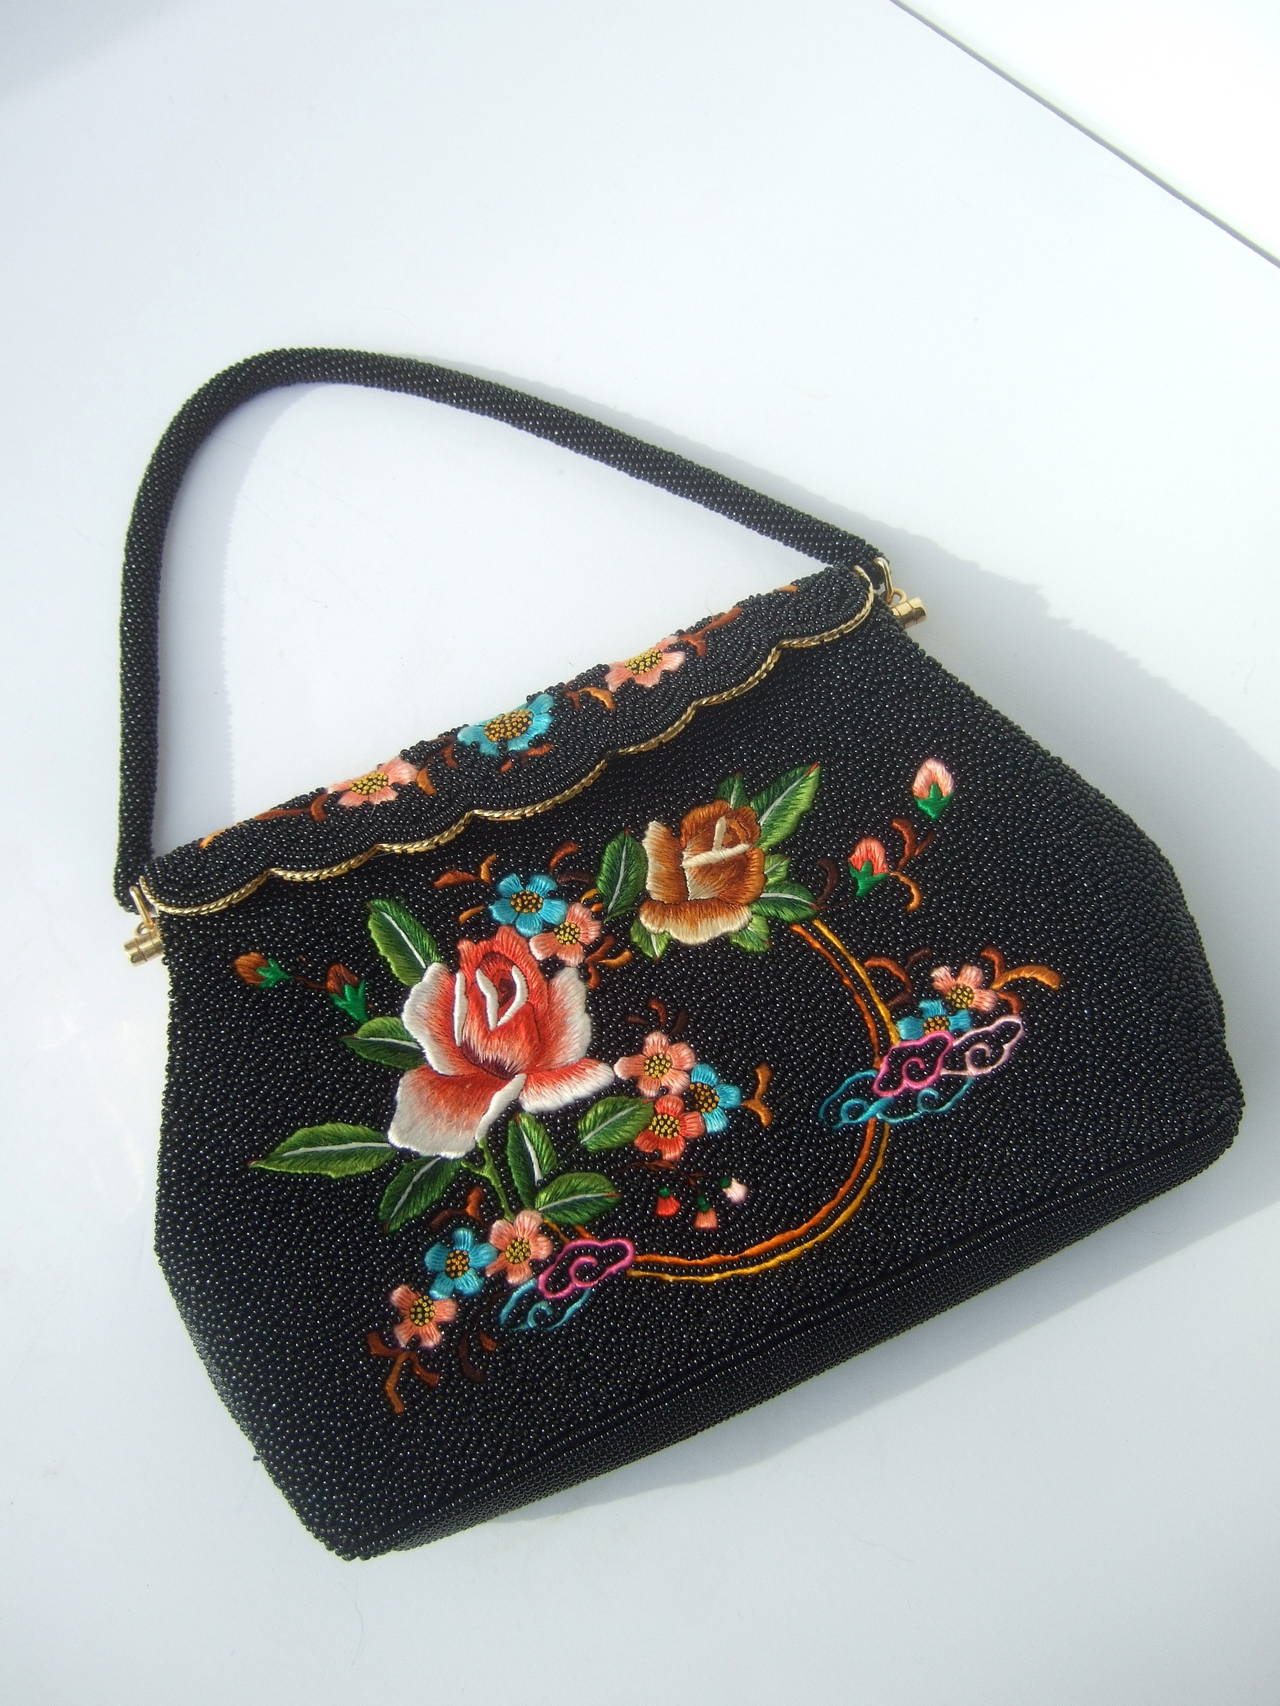 ccdcc70679527 Women s Exquiste Black Glass Beaded Embroidered Evening Bag c 1960 For Sale